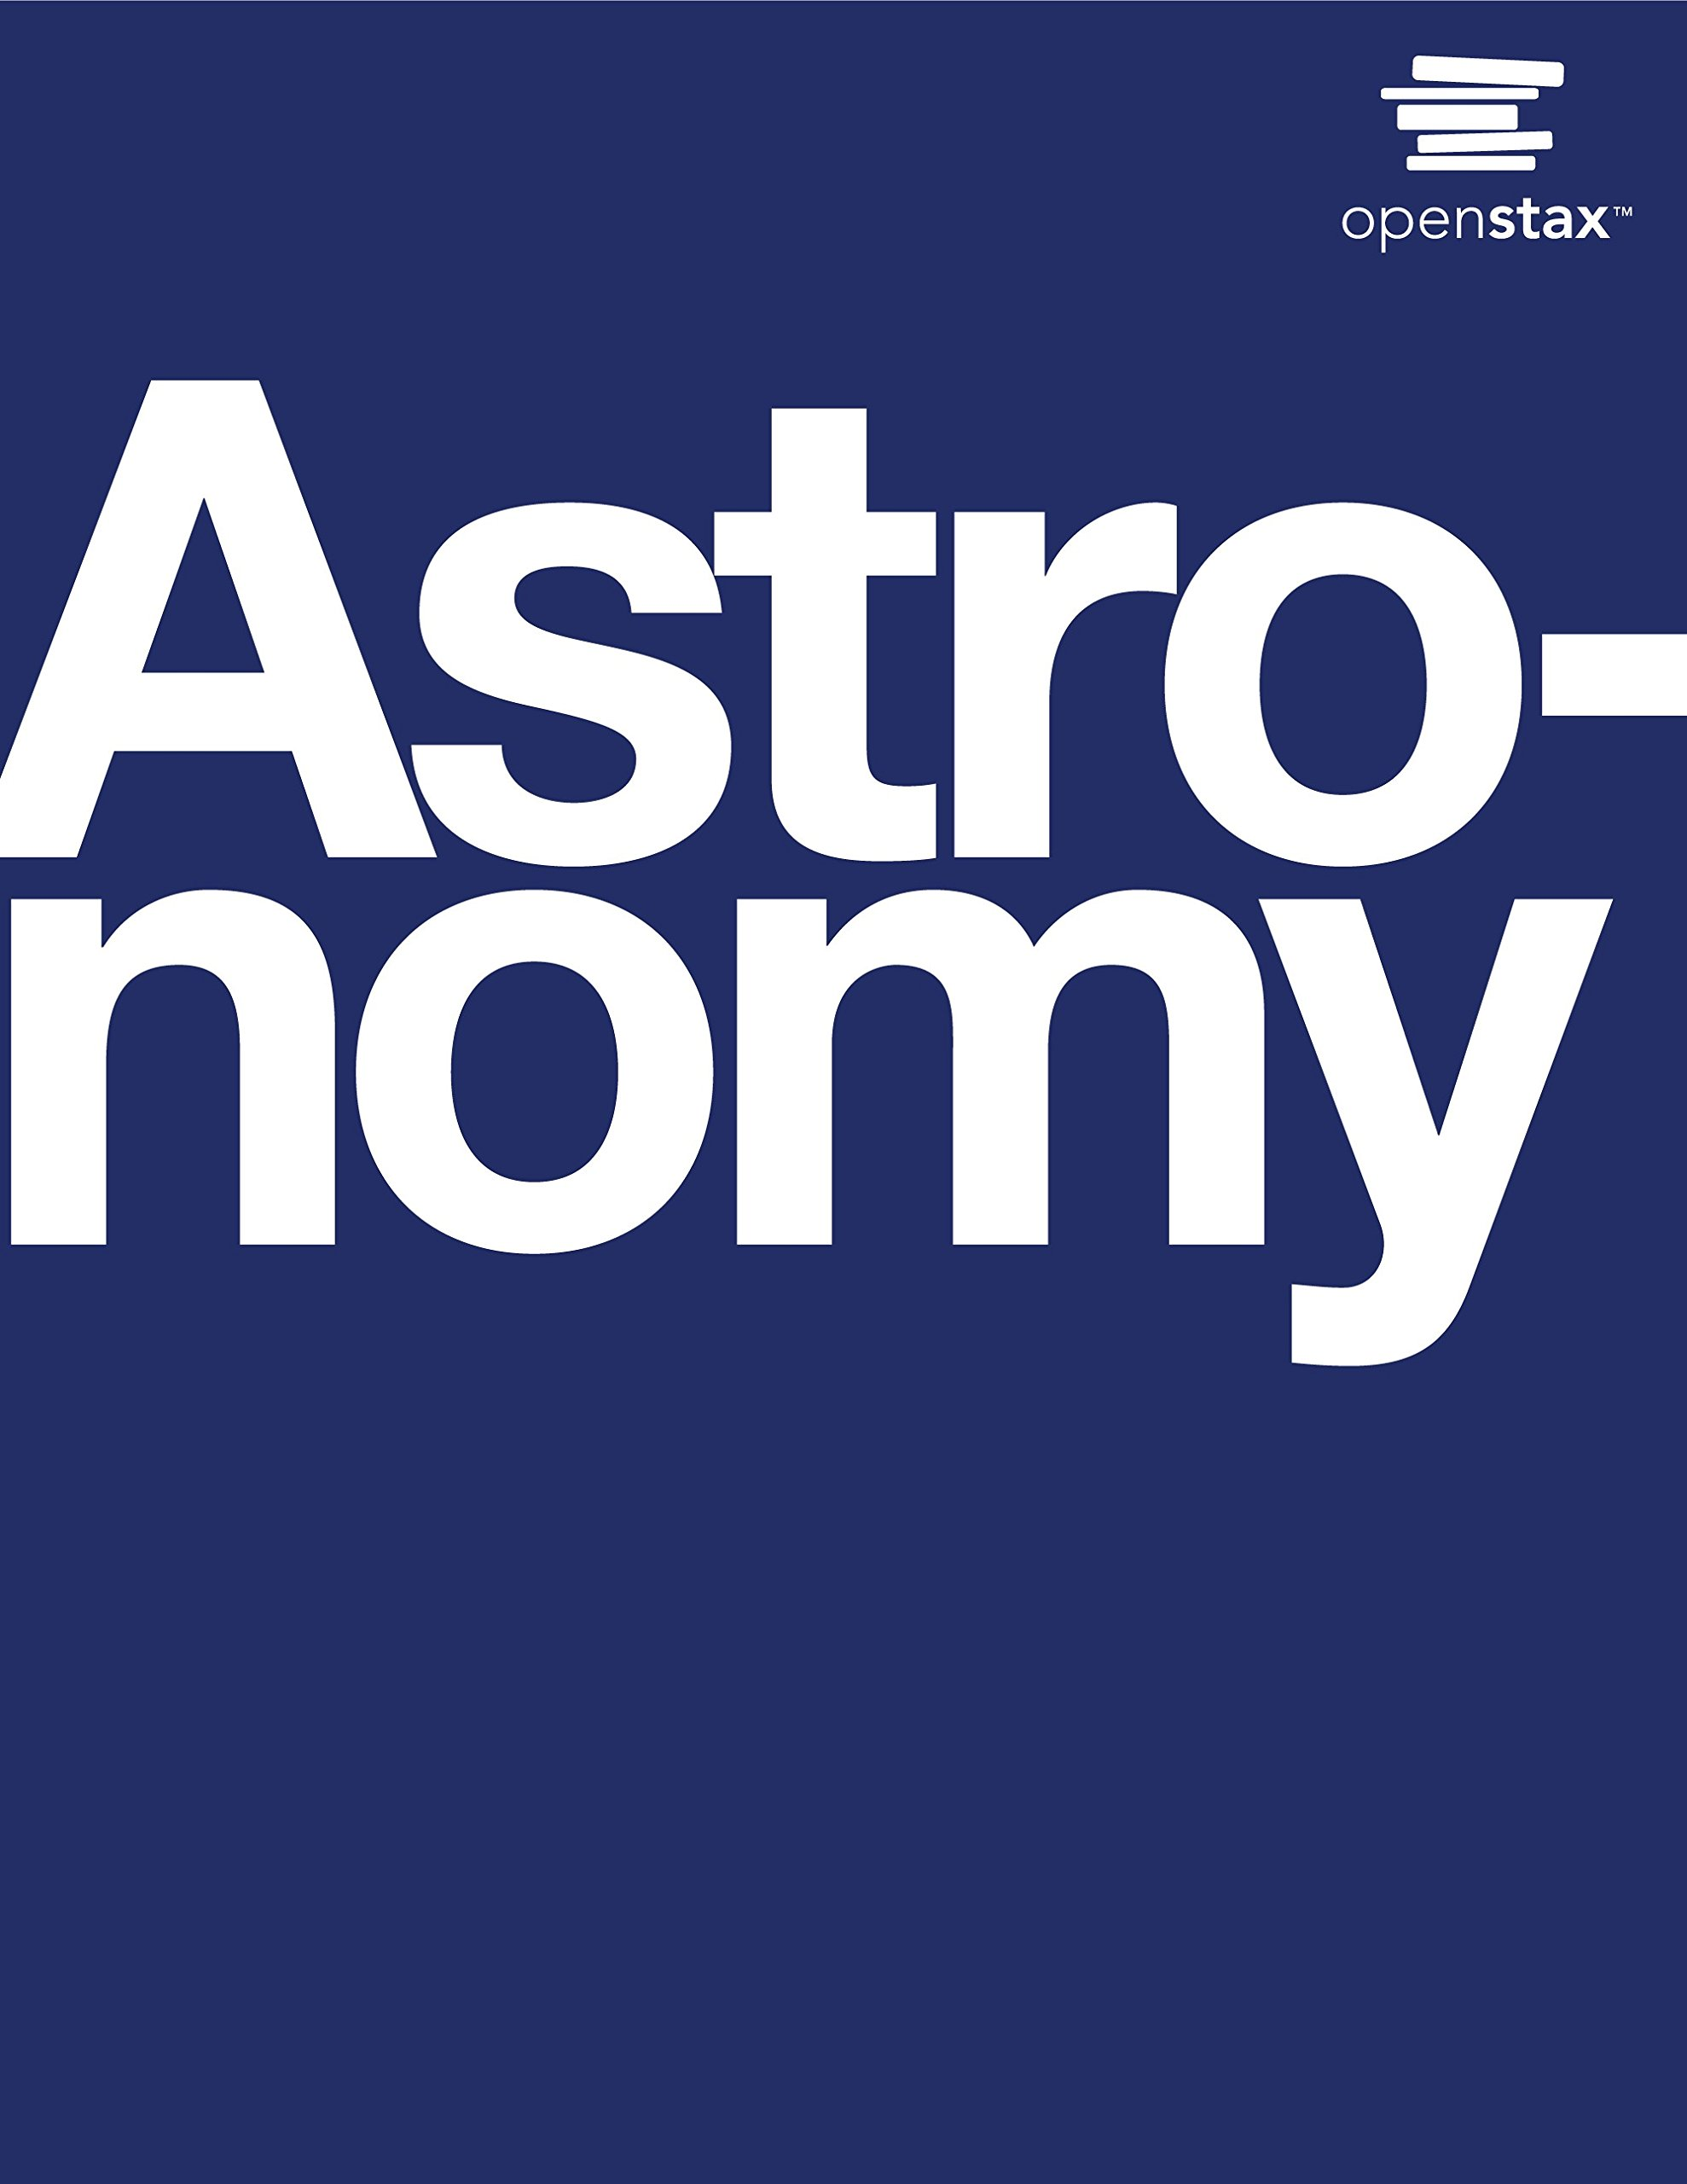 Astronomy Openstax book cover